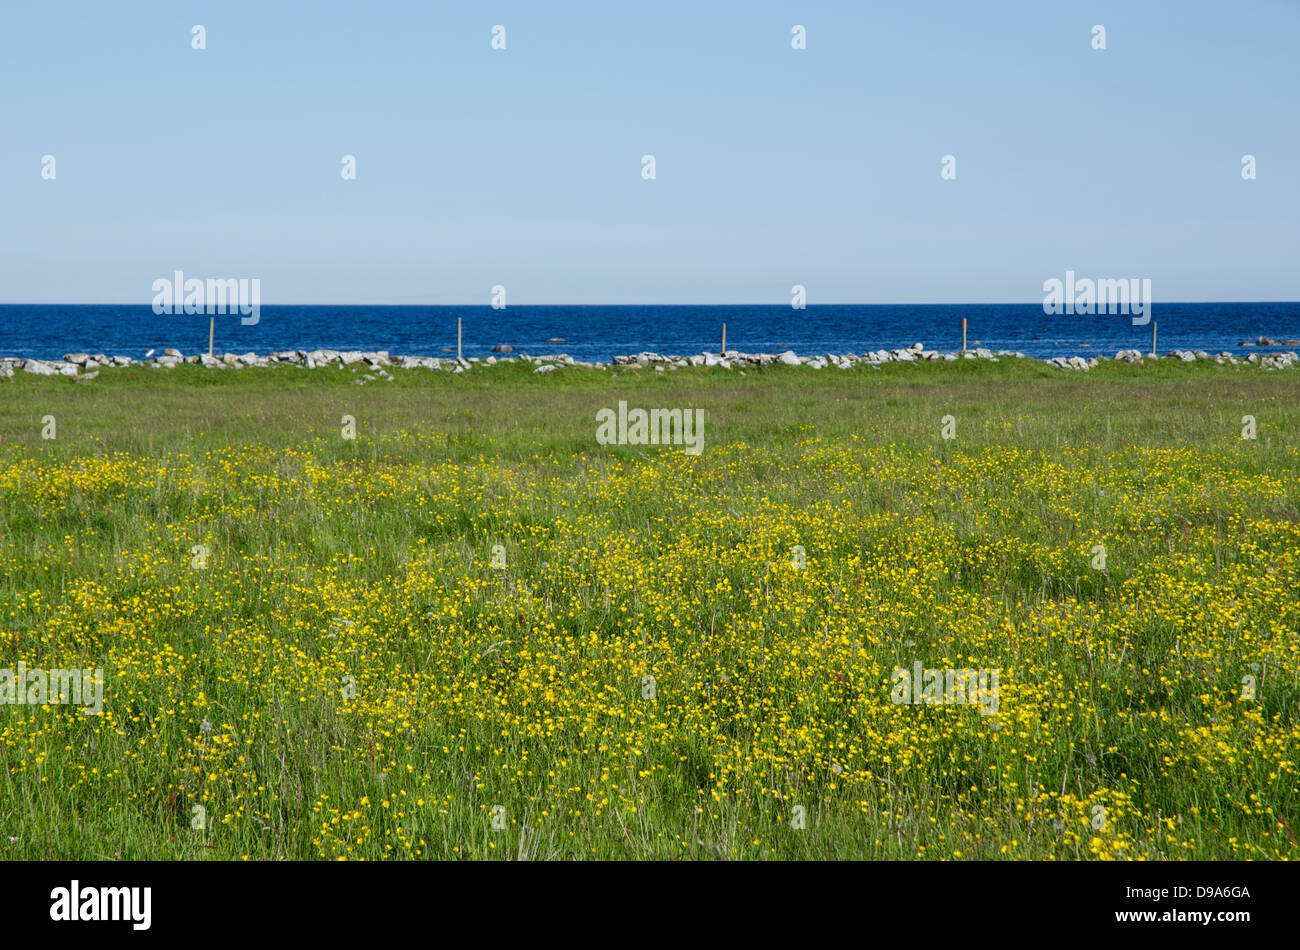 Blue water and yellow flowers in a green field. From the island Oland ind Sweden. - Stock Image